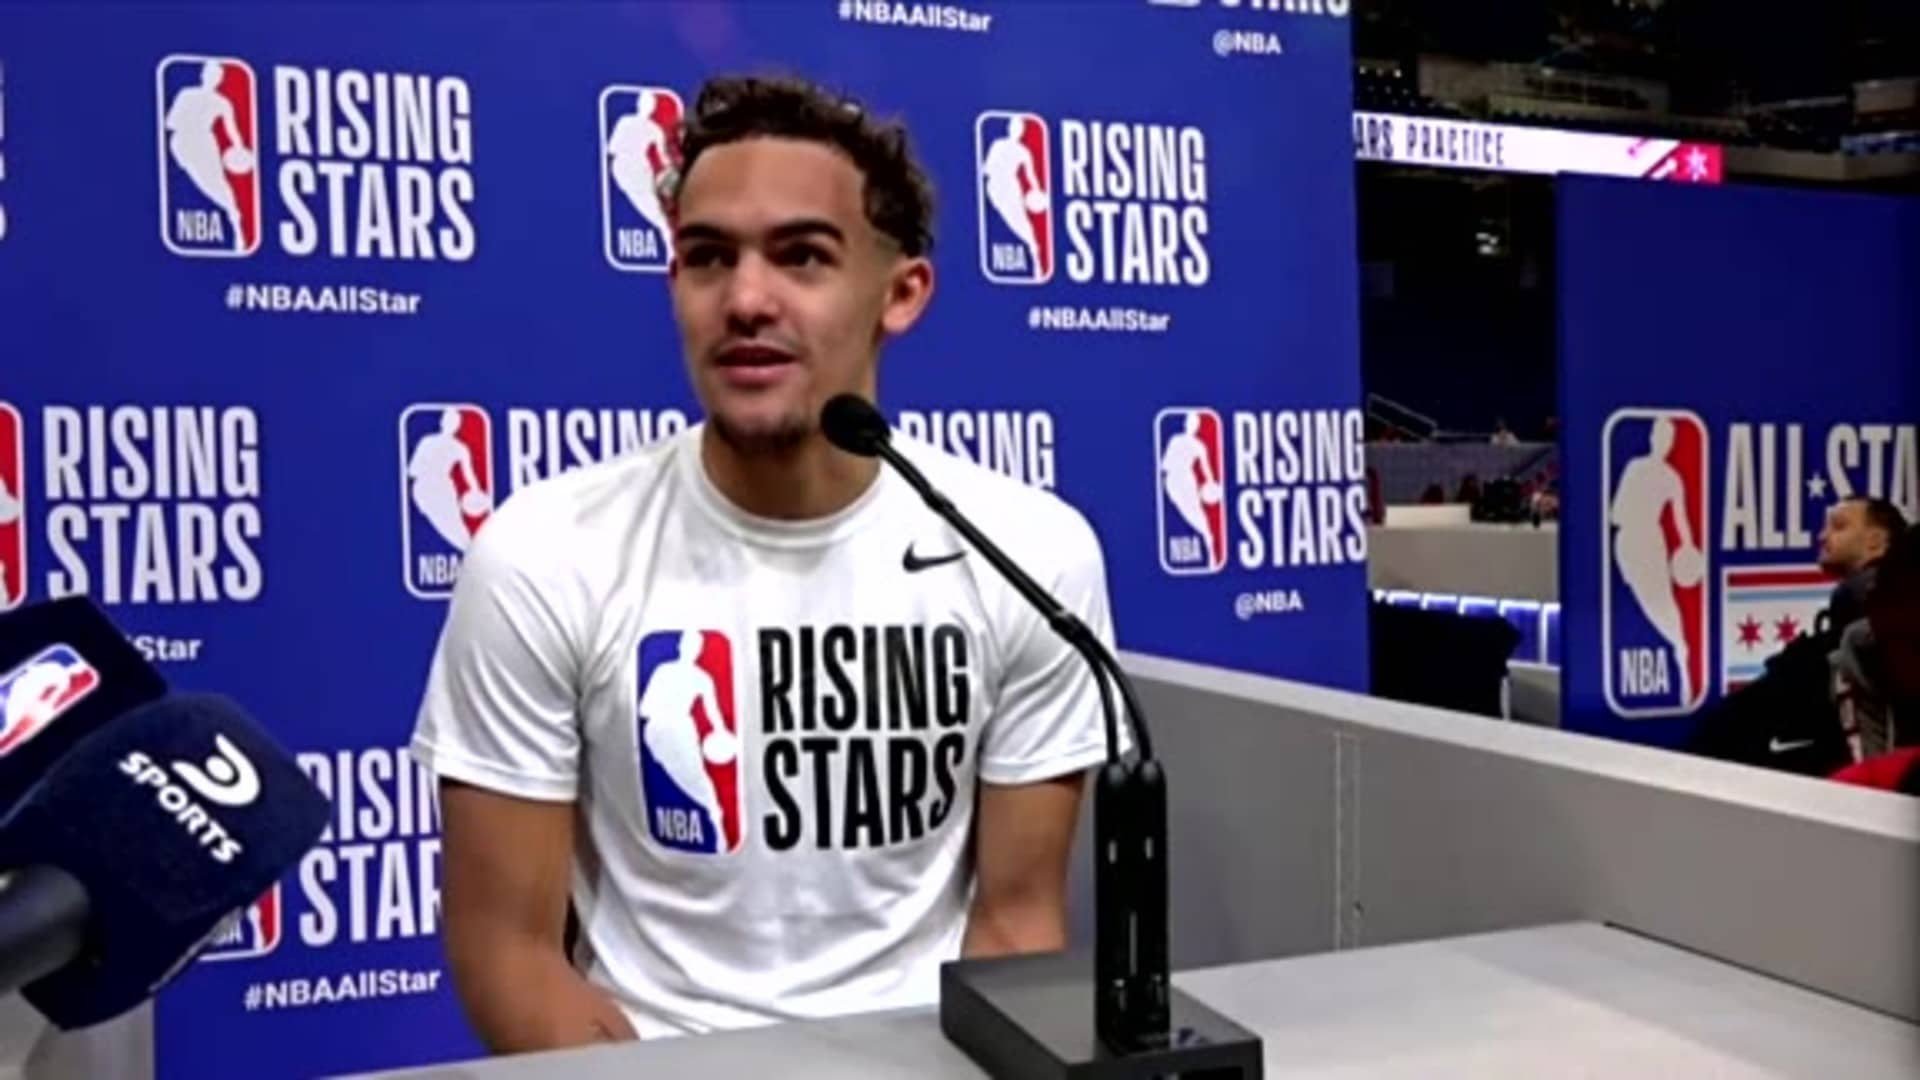 Trae Young Talks About Young Talent, Kobe Bryant All-Star Moments At Rising Stars Media Day